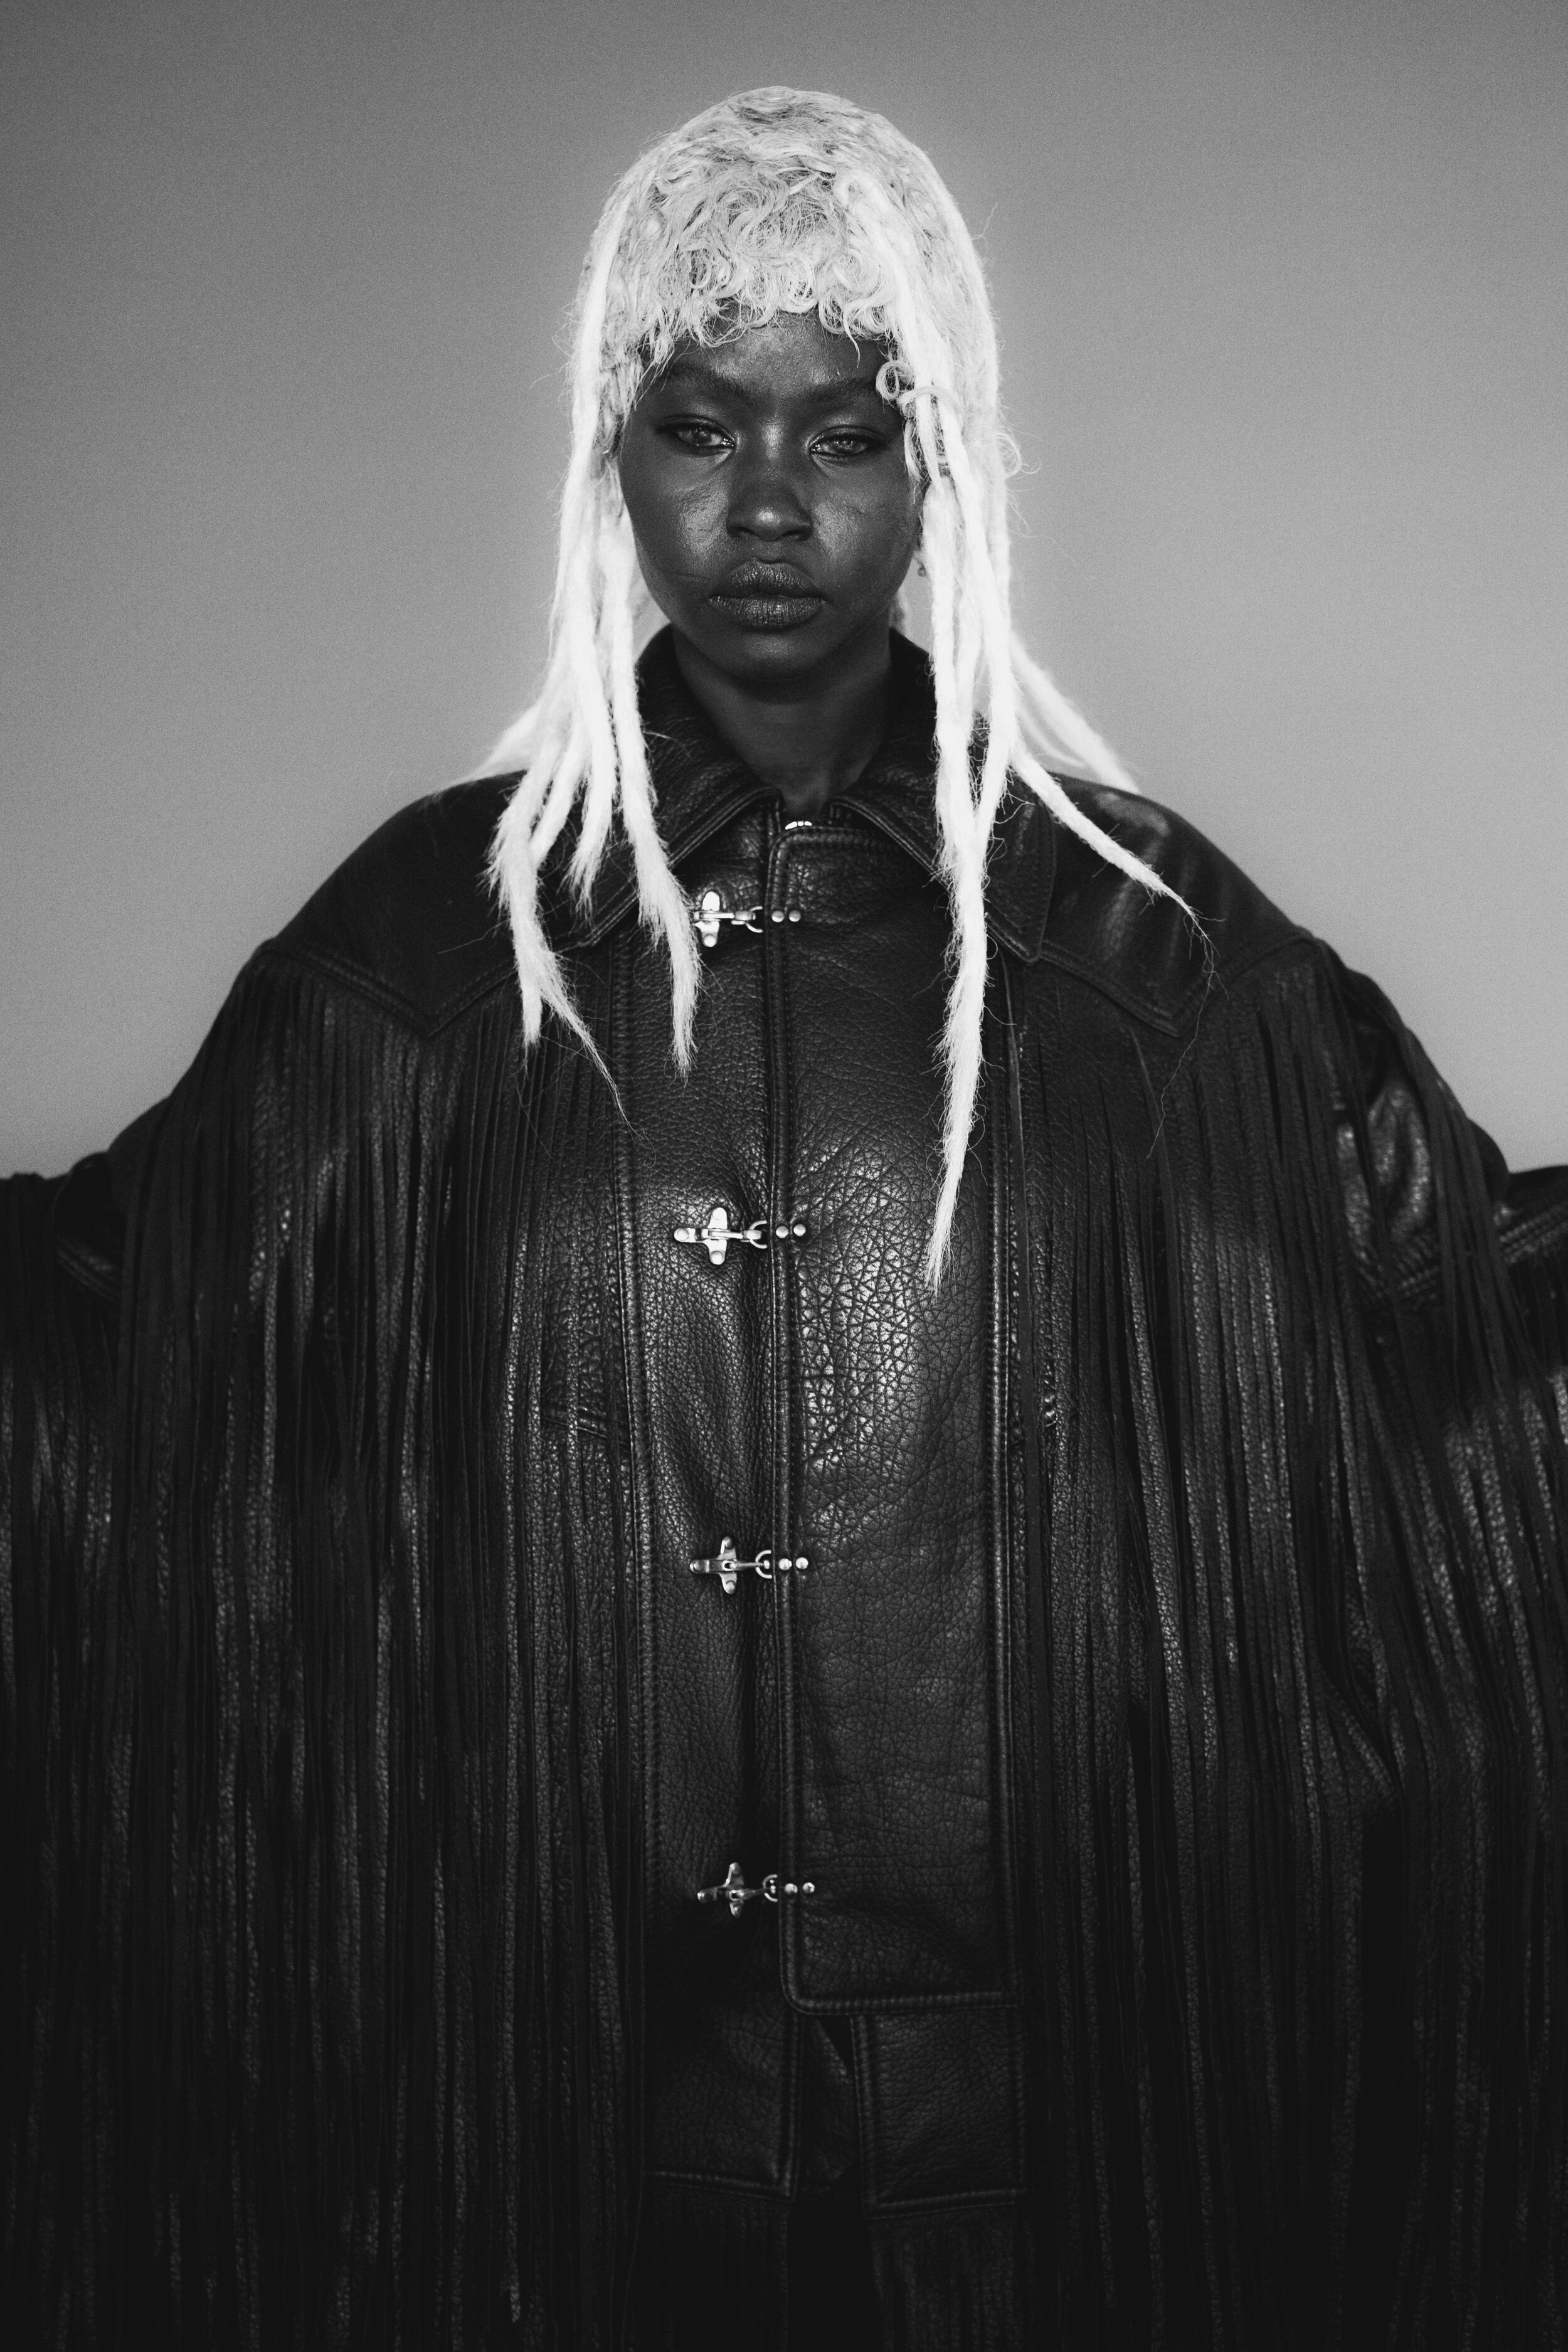 aweng chuol photographed by akram shah for phosphenes #7